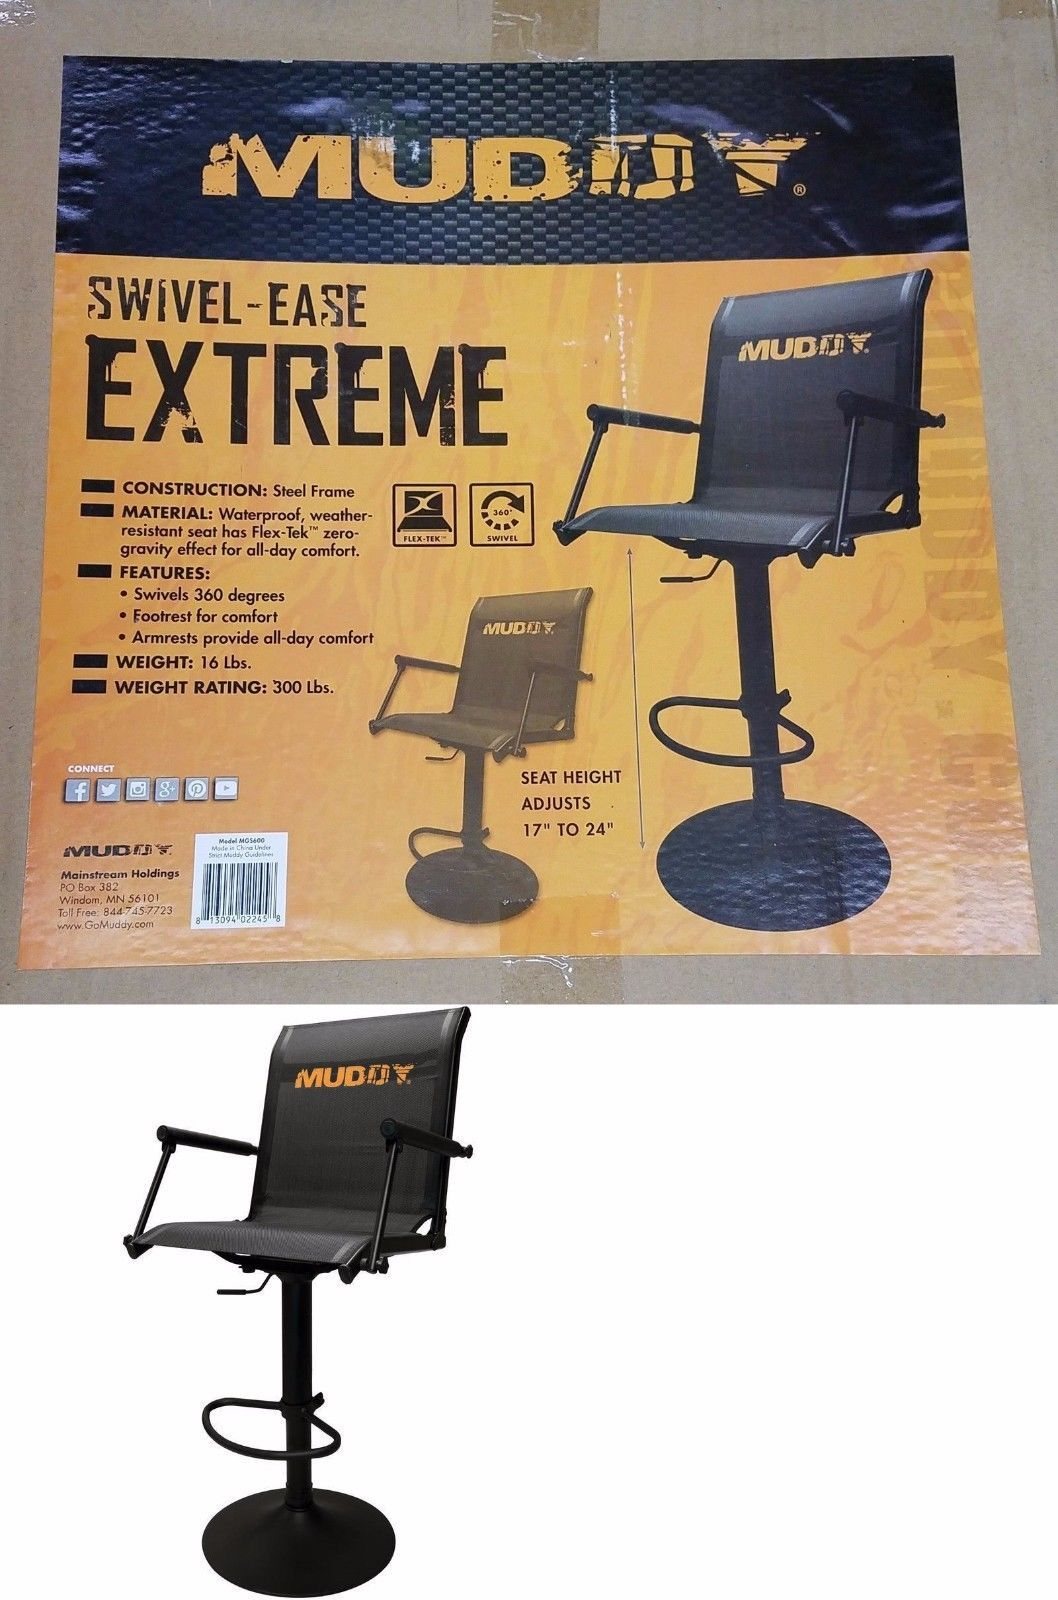 Swell Muddy Outdoors Swivel Ease Xtreme Adjustable Chair Stool Machost Co Dining Chair Design Ideas Machostcouk